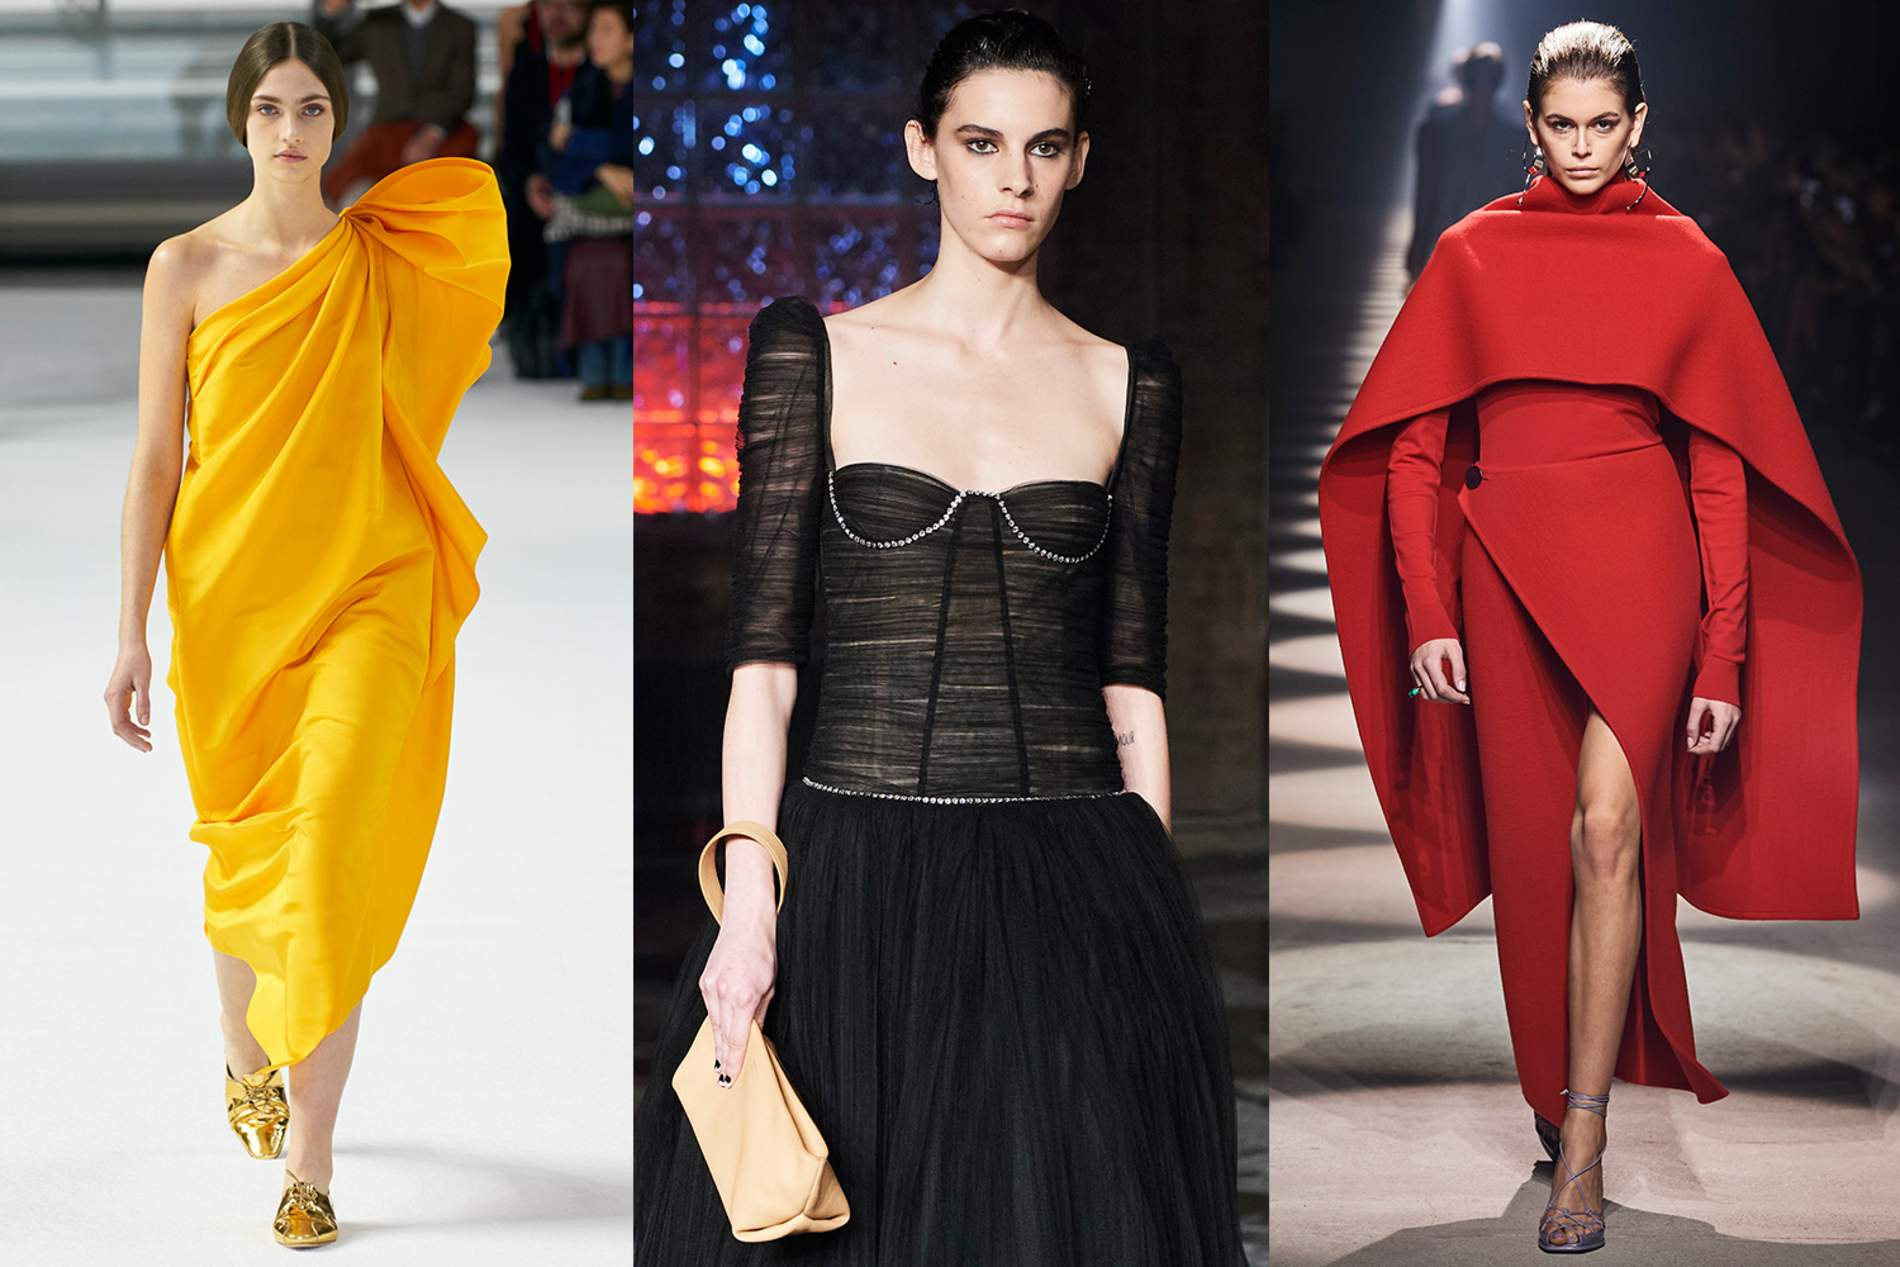 Fw20 Fashion Trend Report Women S Fashion Trends For Fall Winter 2020 Porter